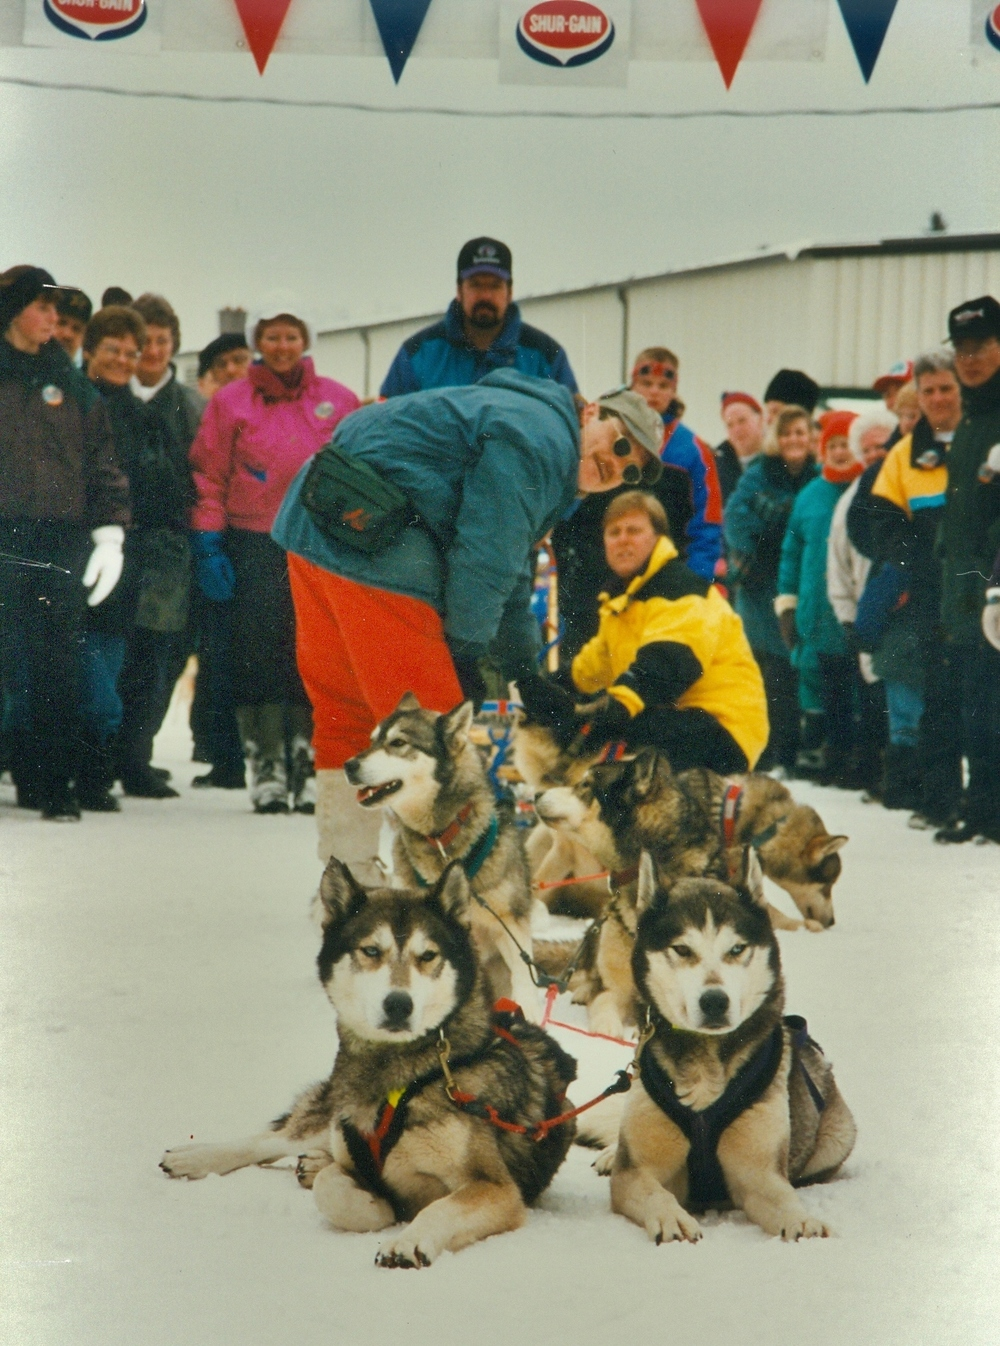 Snofest 1997 Derry O'Byrne,  Ronald Francis (Sleeman's rep) in yellow,  Al Moorcroft at rear